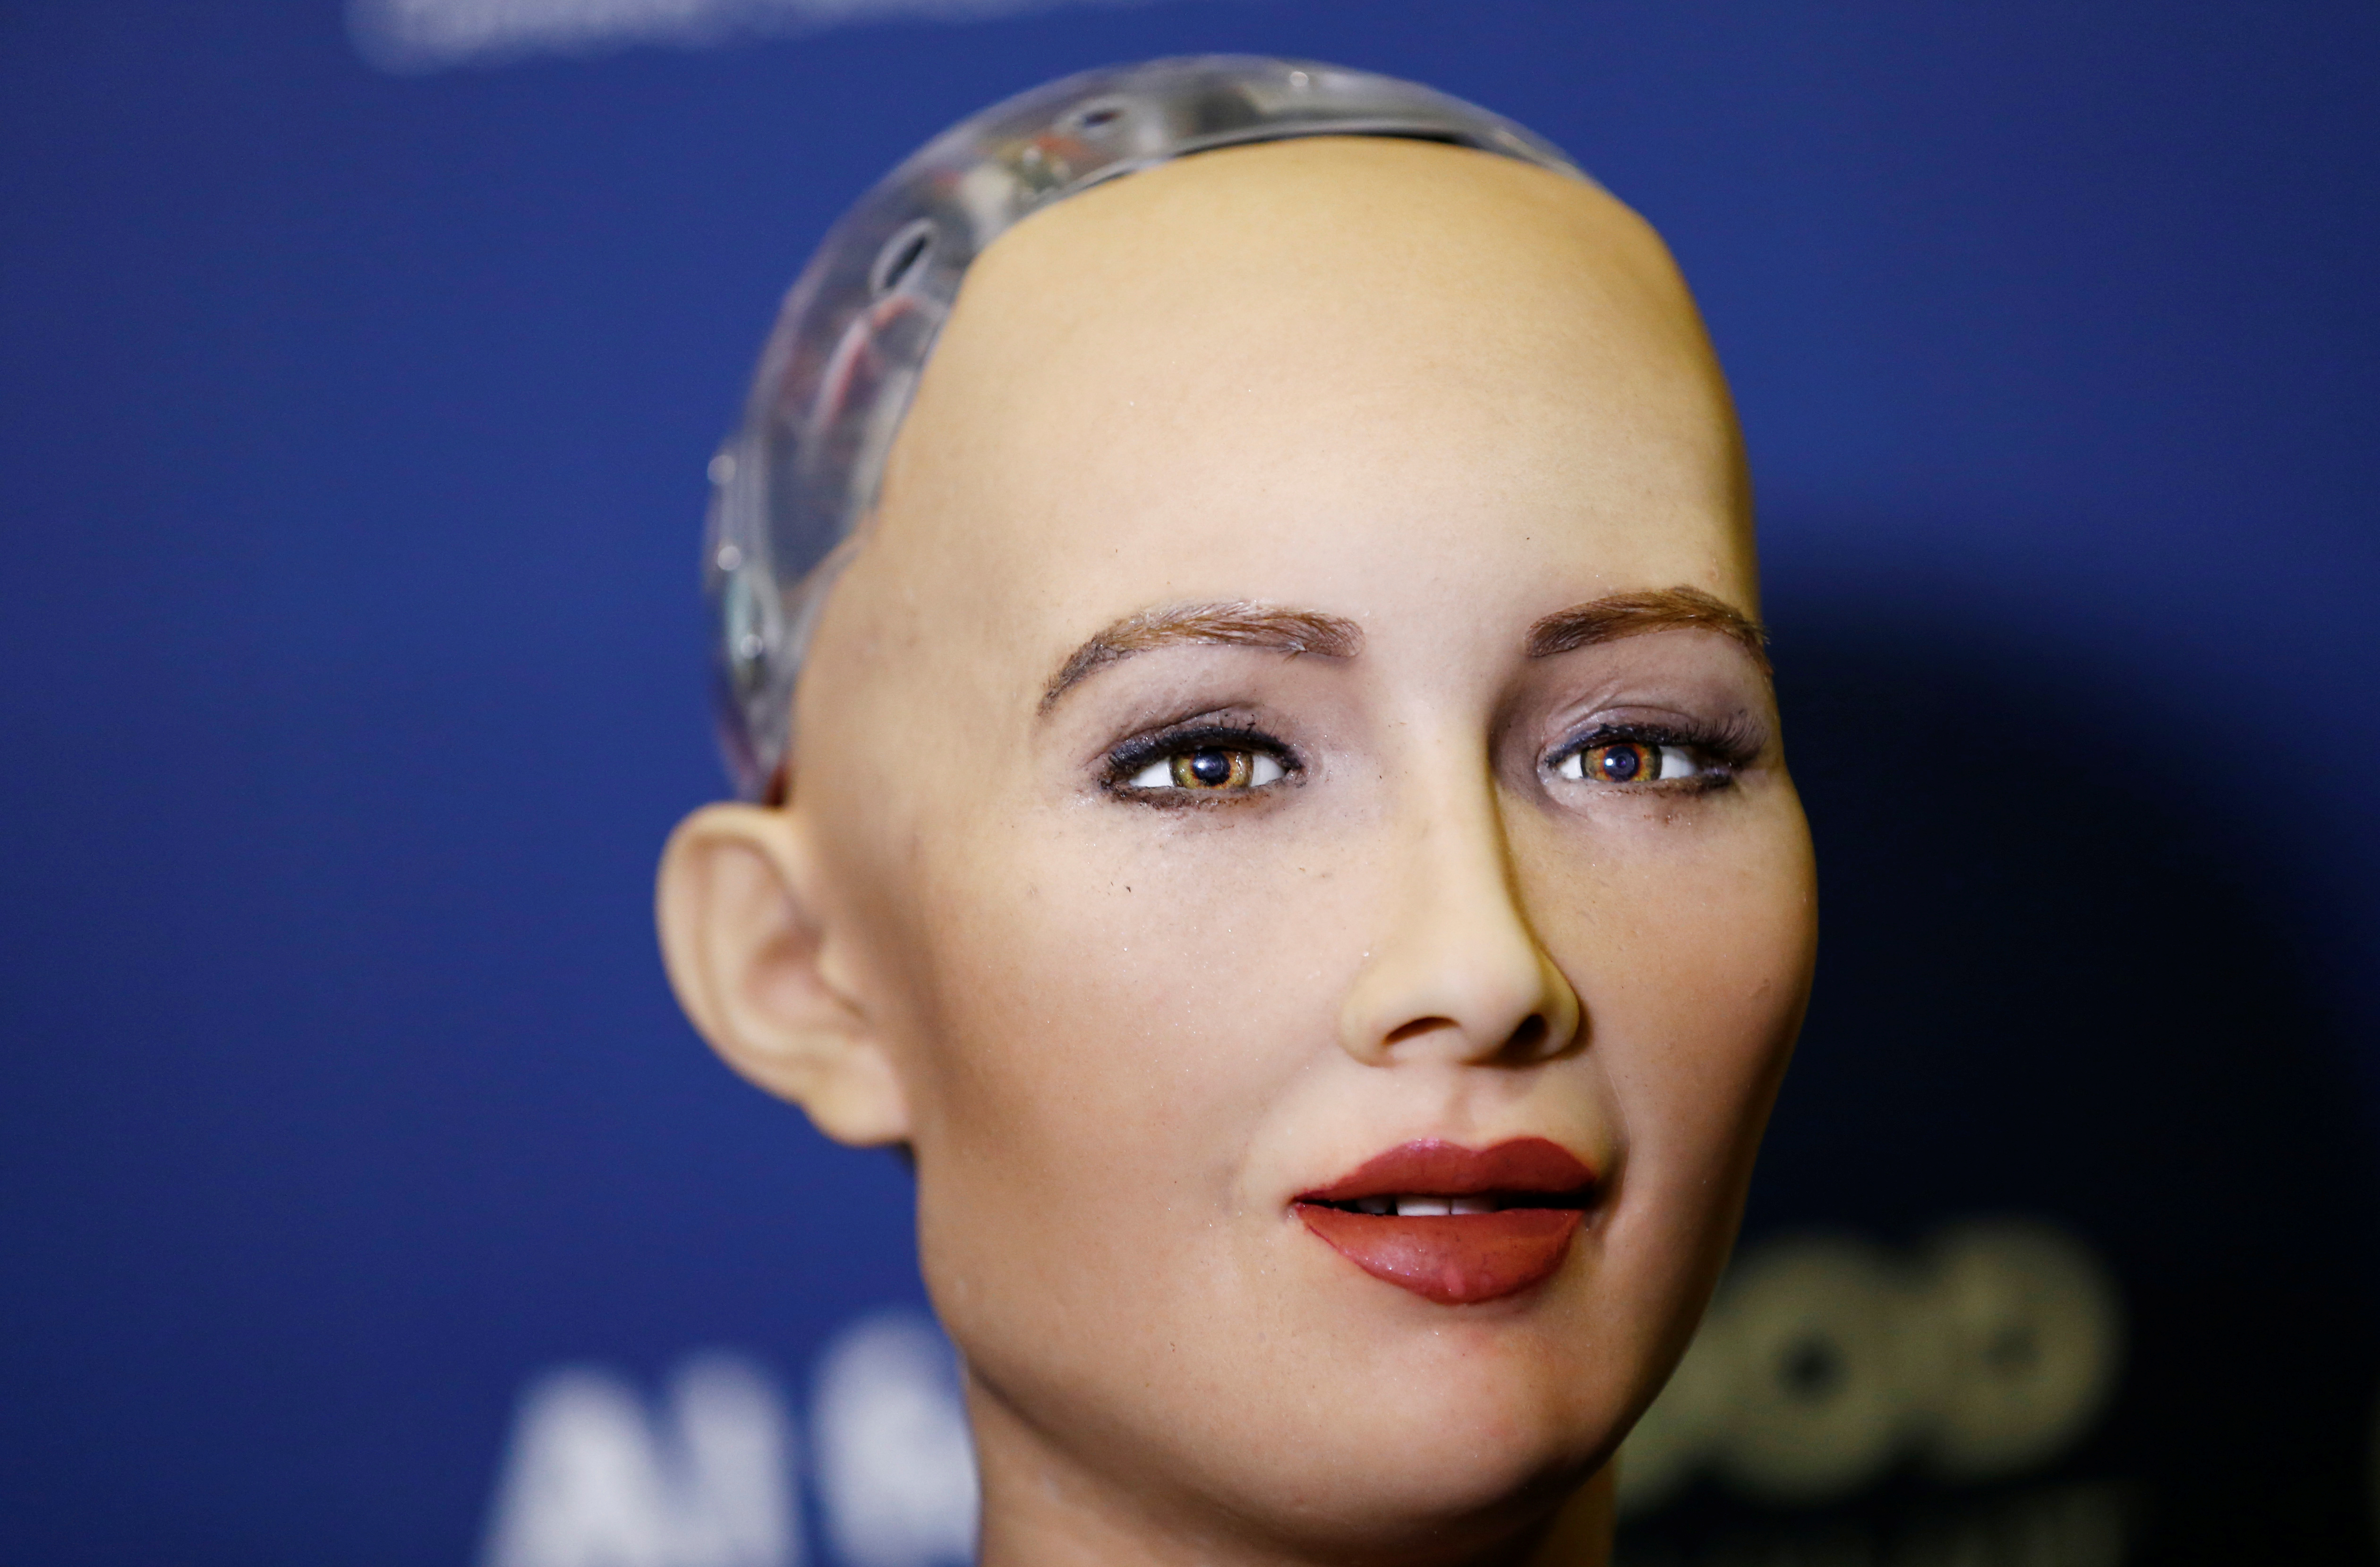 """Sophia, a robot integrating the latest technologies and artificial intelligence developed by Hanson Robotics is pictured during a presentation at the """"AI for Good"""" Global Summit at the International Telecommunication Union (ITU) in Geneva, Switzerland Jun"""